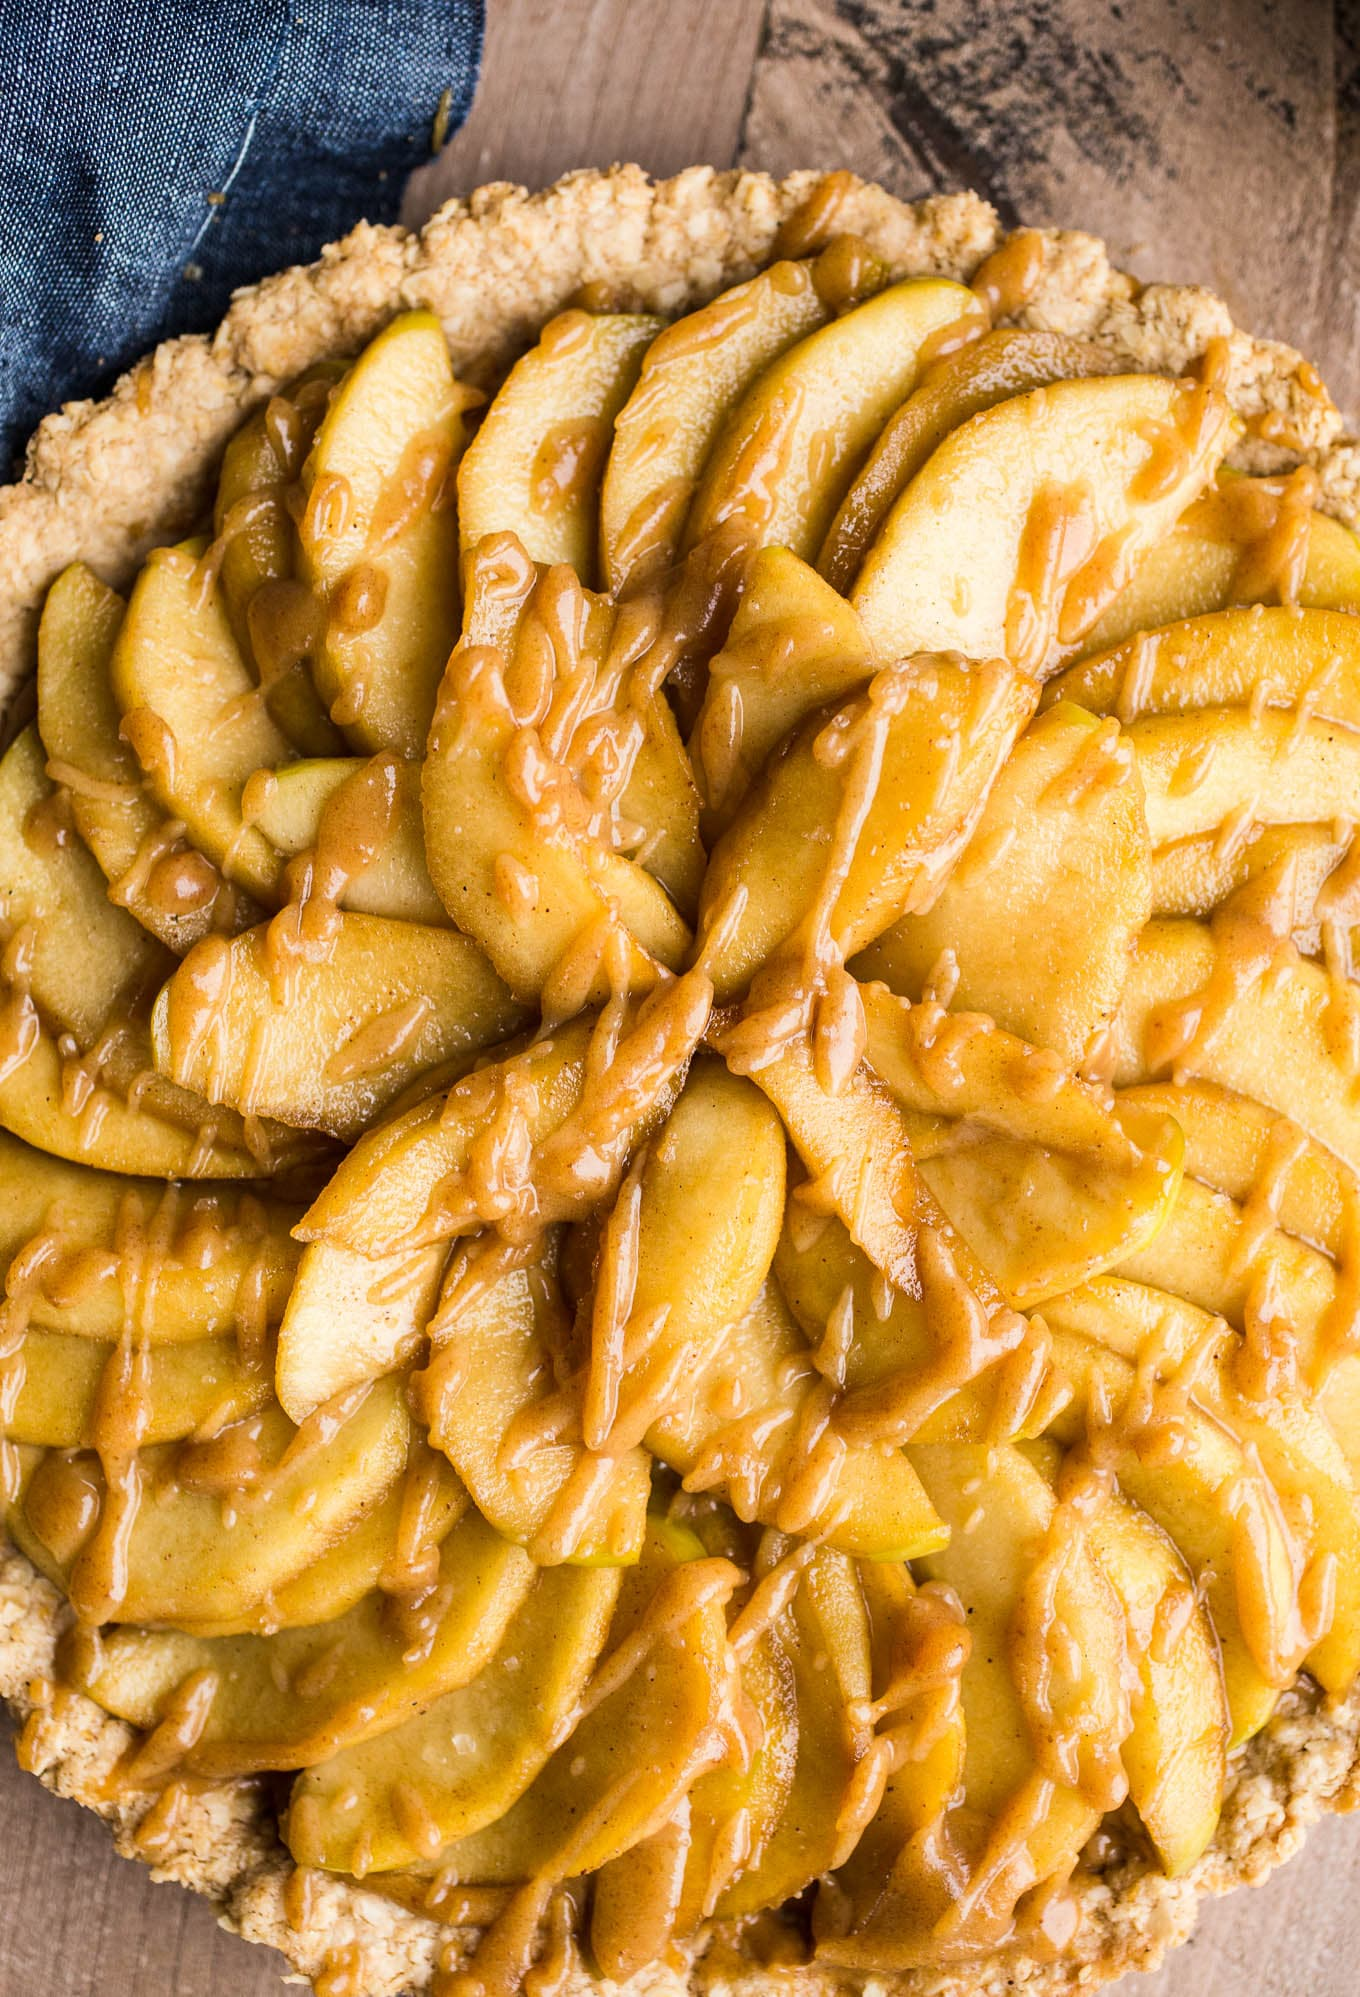 Gluten-Free Apple Tart with Oatmeal Cookie Crust is an easy dessert recipe made with an oat flour crust, a layer of date caramel, and topped with cinnamon apples. Prepare the crust and date caramel ahead of time for easier assembly.Vegan